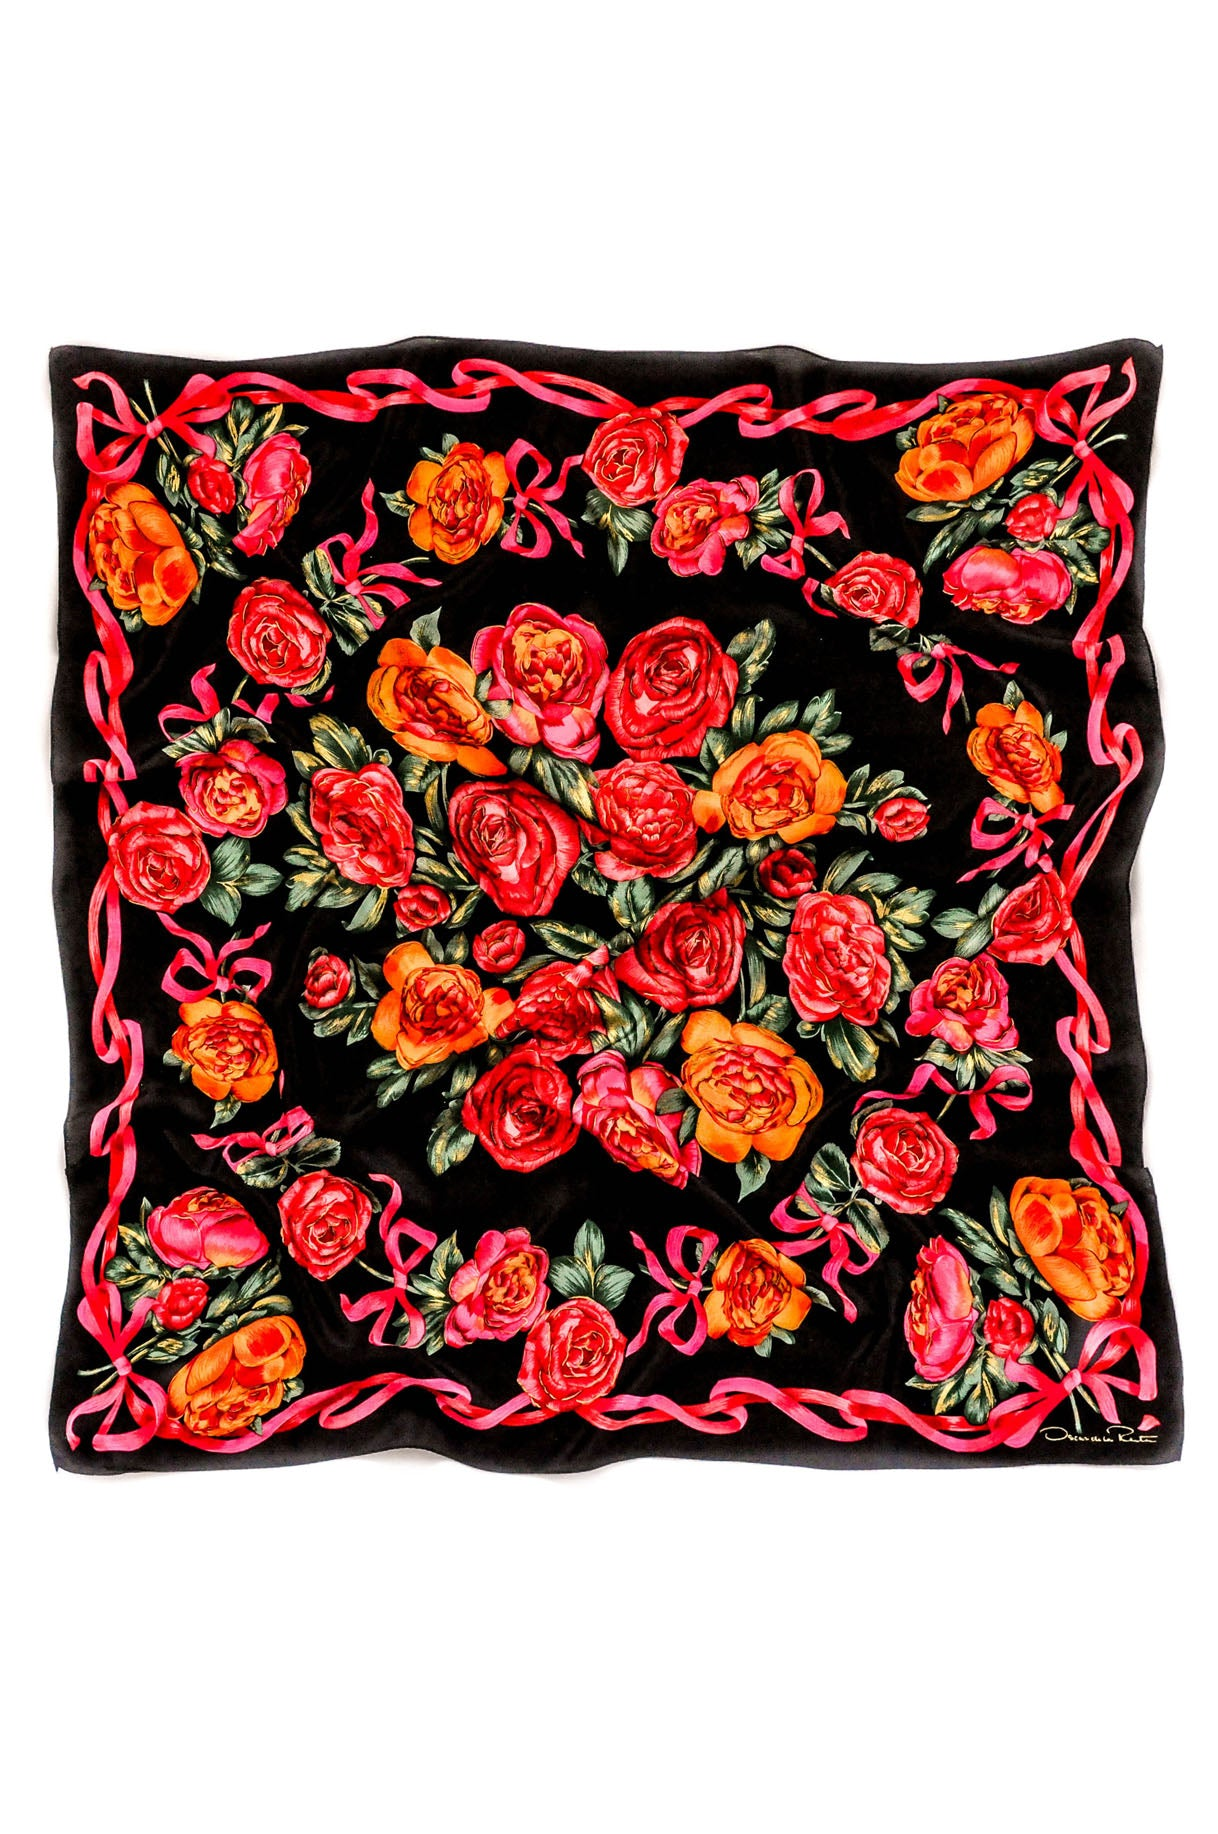 Vintage Oscar de la Renta Bold Bow Roses Scarf from Sweet and Spark